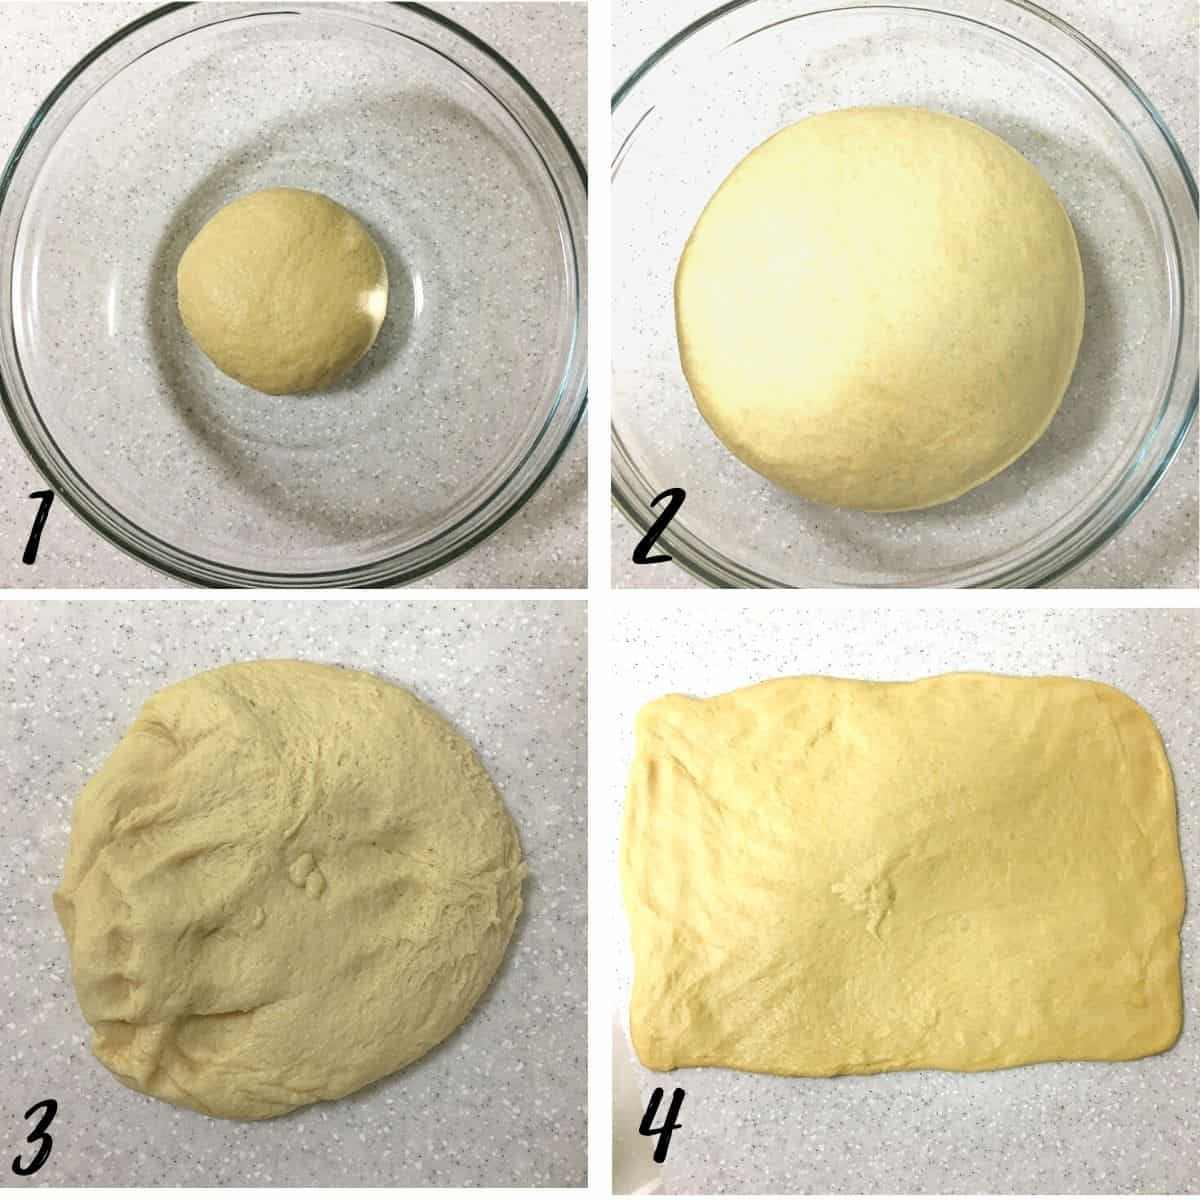 A poster of 4 images showing how to proof dough and how to roll it